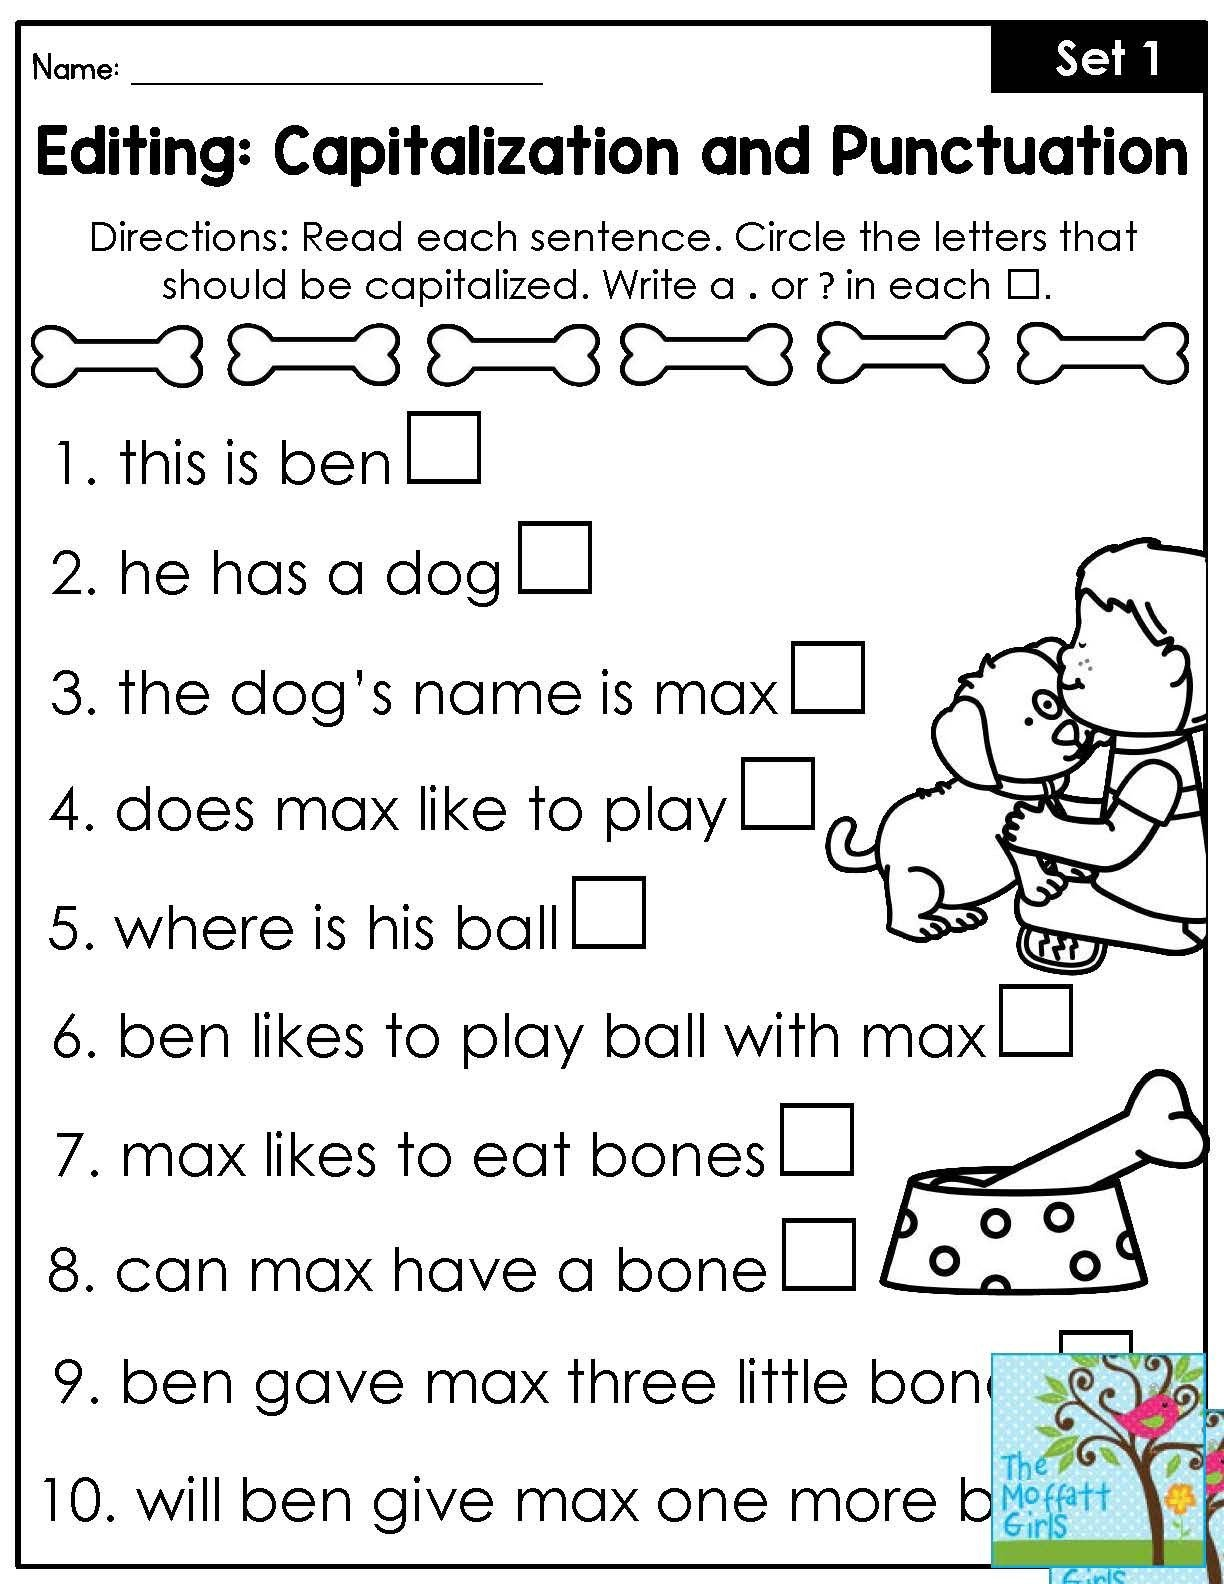 mastering grammar and language arts first grade lessons english worksheet mathable worksheets free